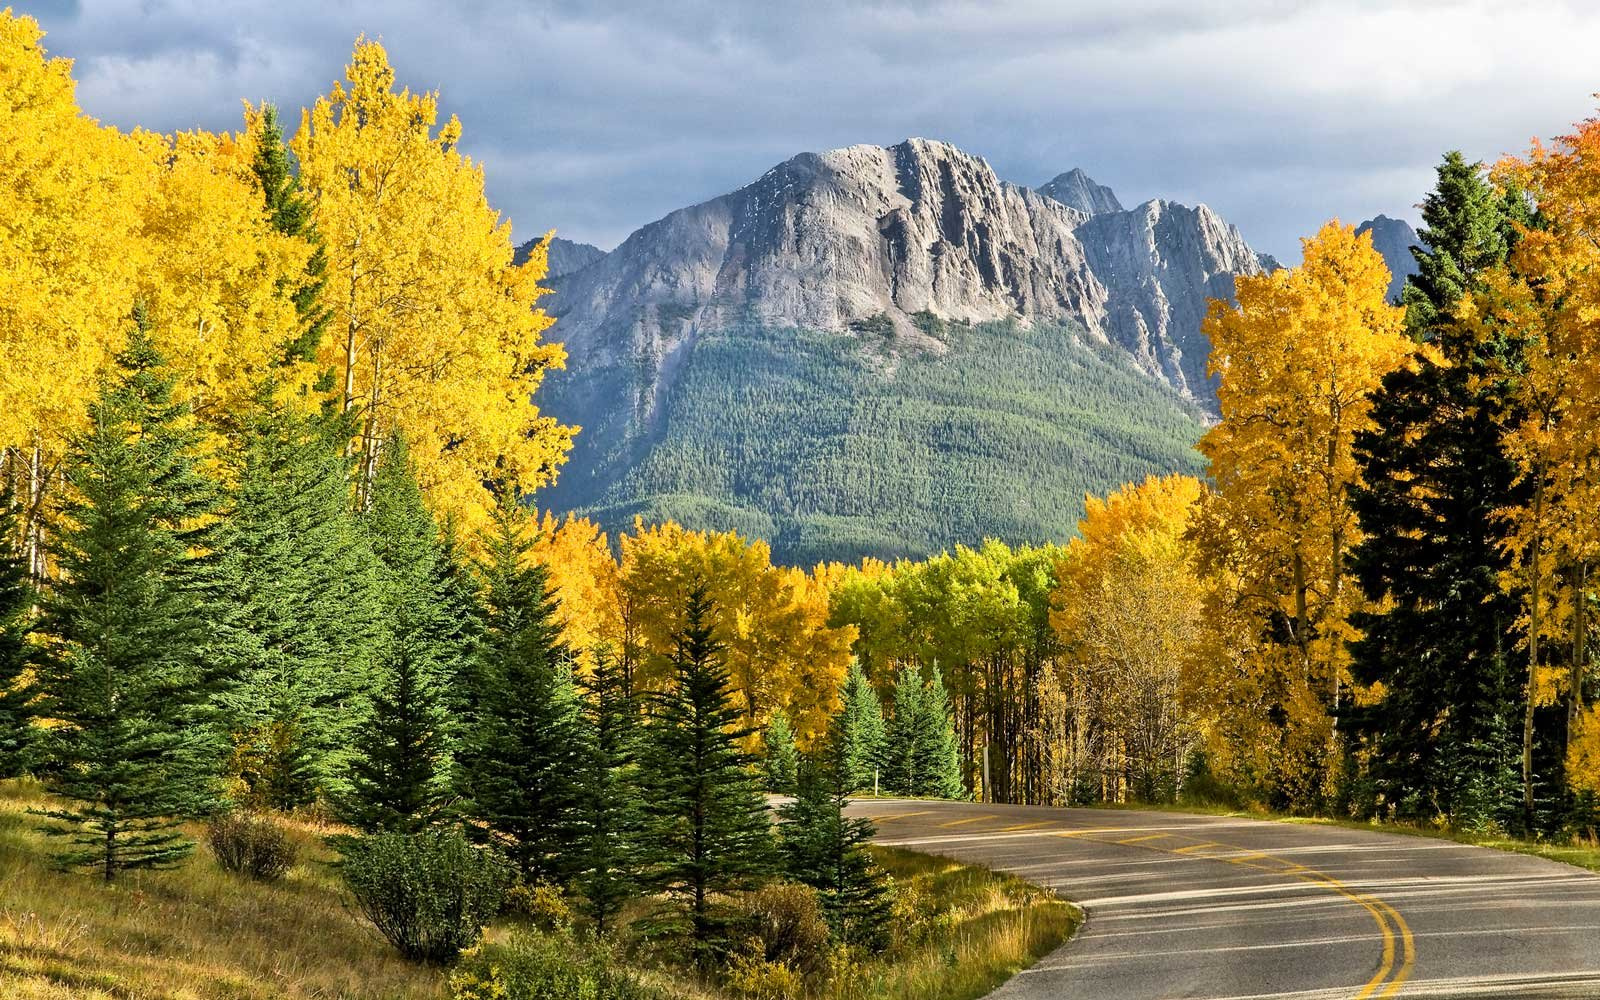 Bow Valley Parkway, Rocky Mountains, Banff National Park, Alberta, Canada